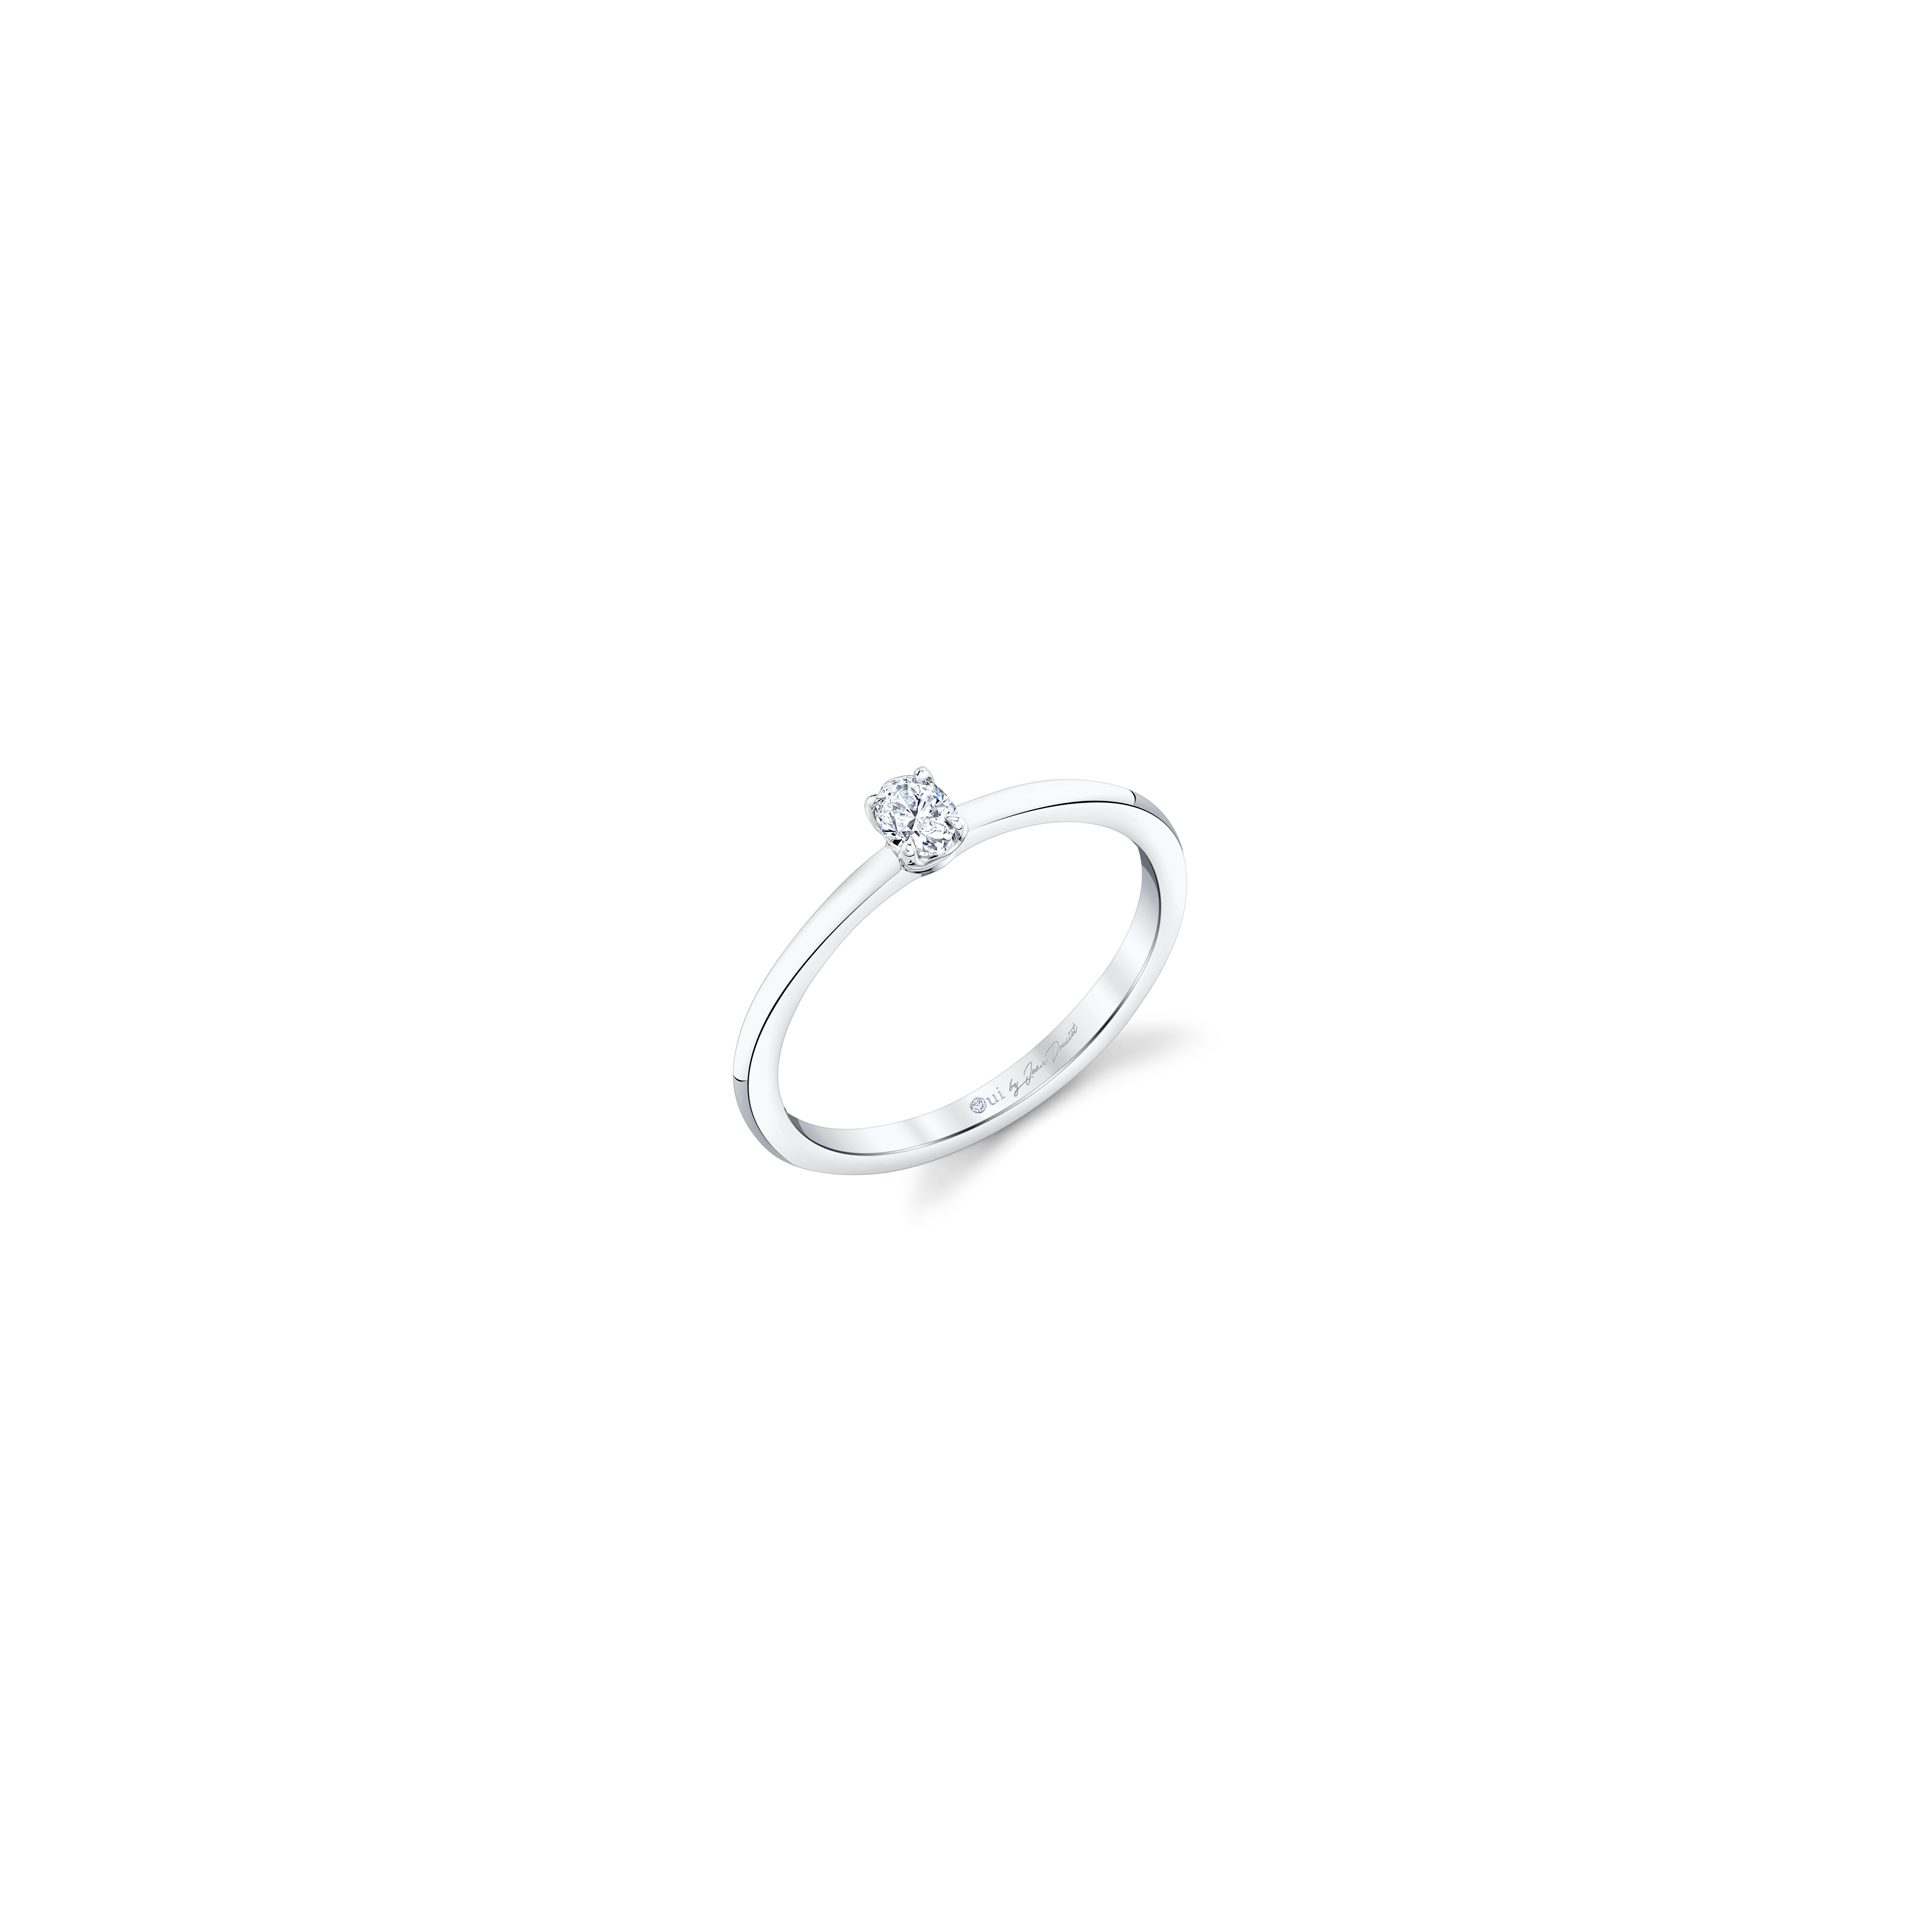 La Petite Oval Diamond Wedding Band in 18k White Gold Standing View by Oui by Jean Dousset